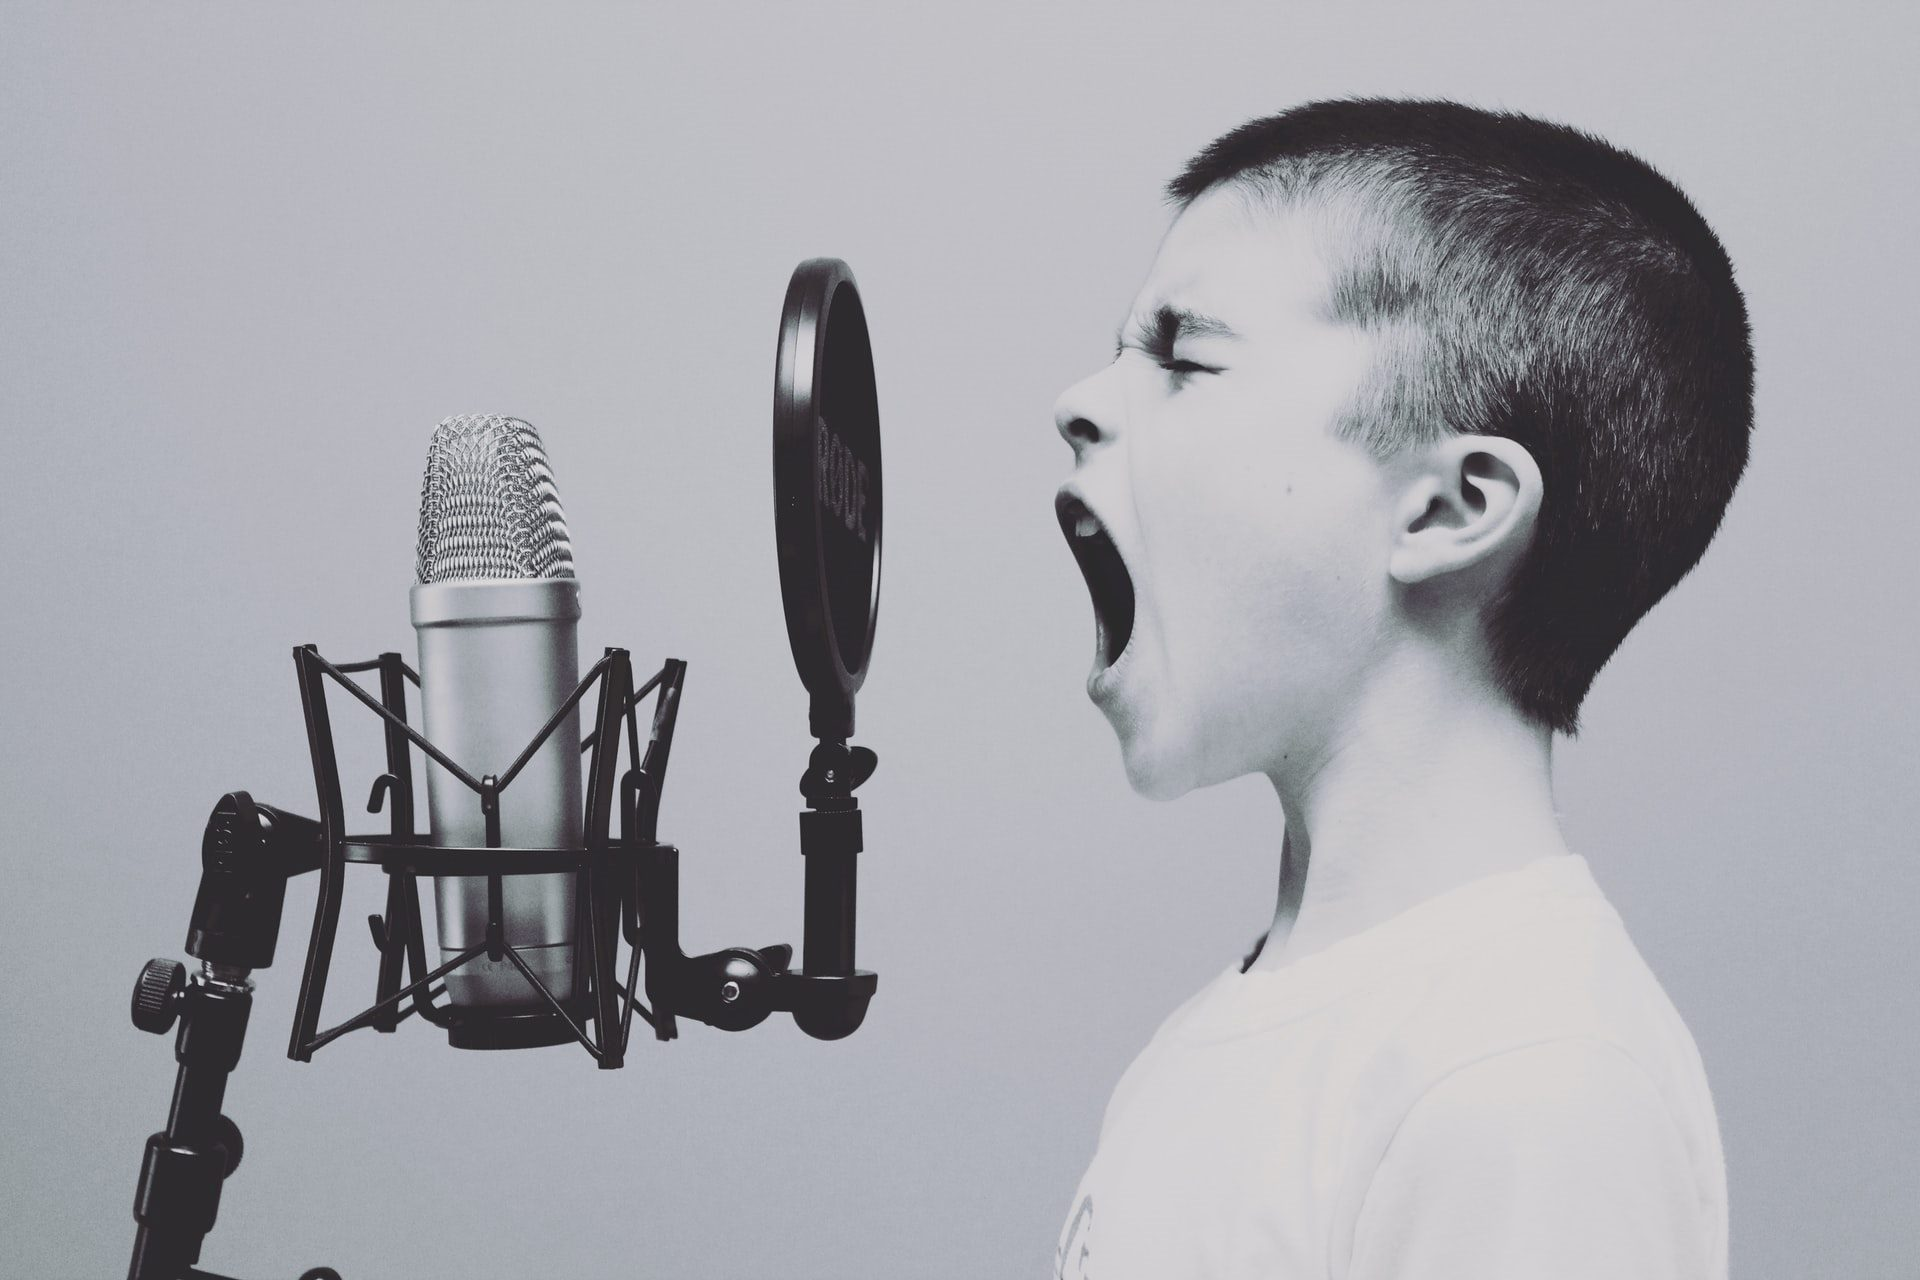 kid shouting into a microphone black and white